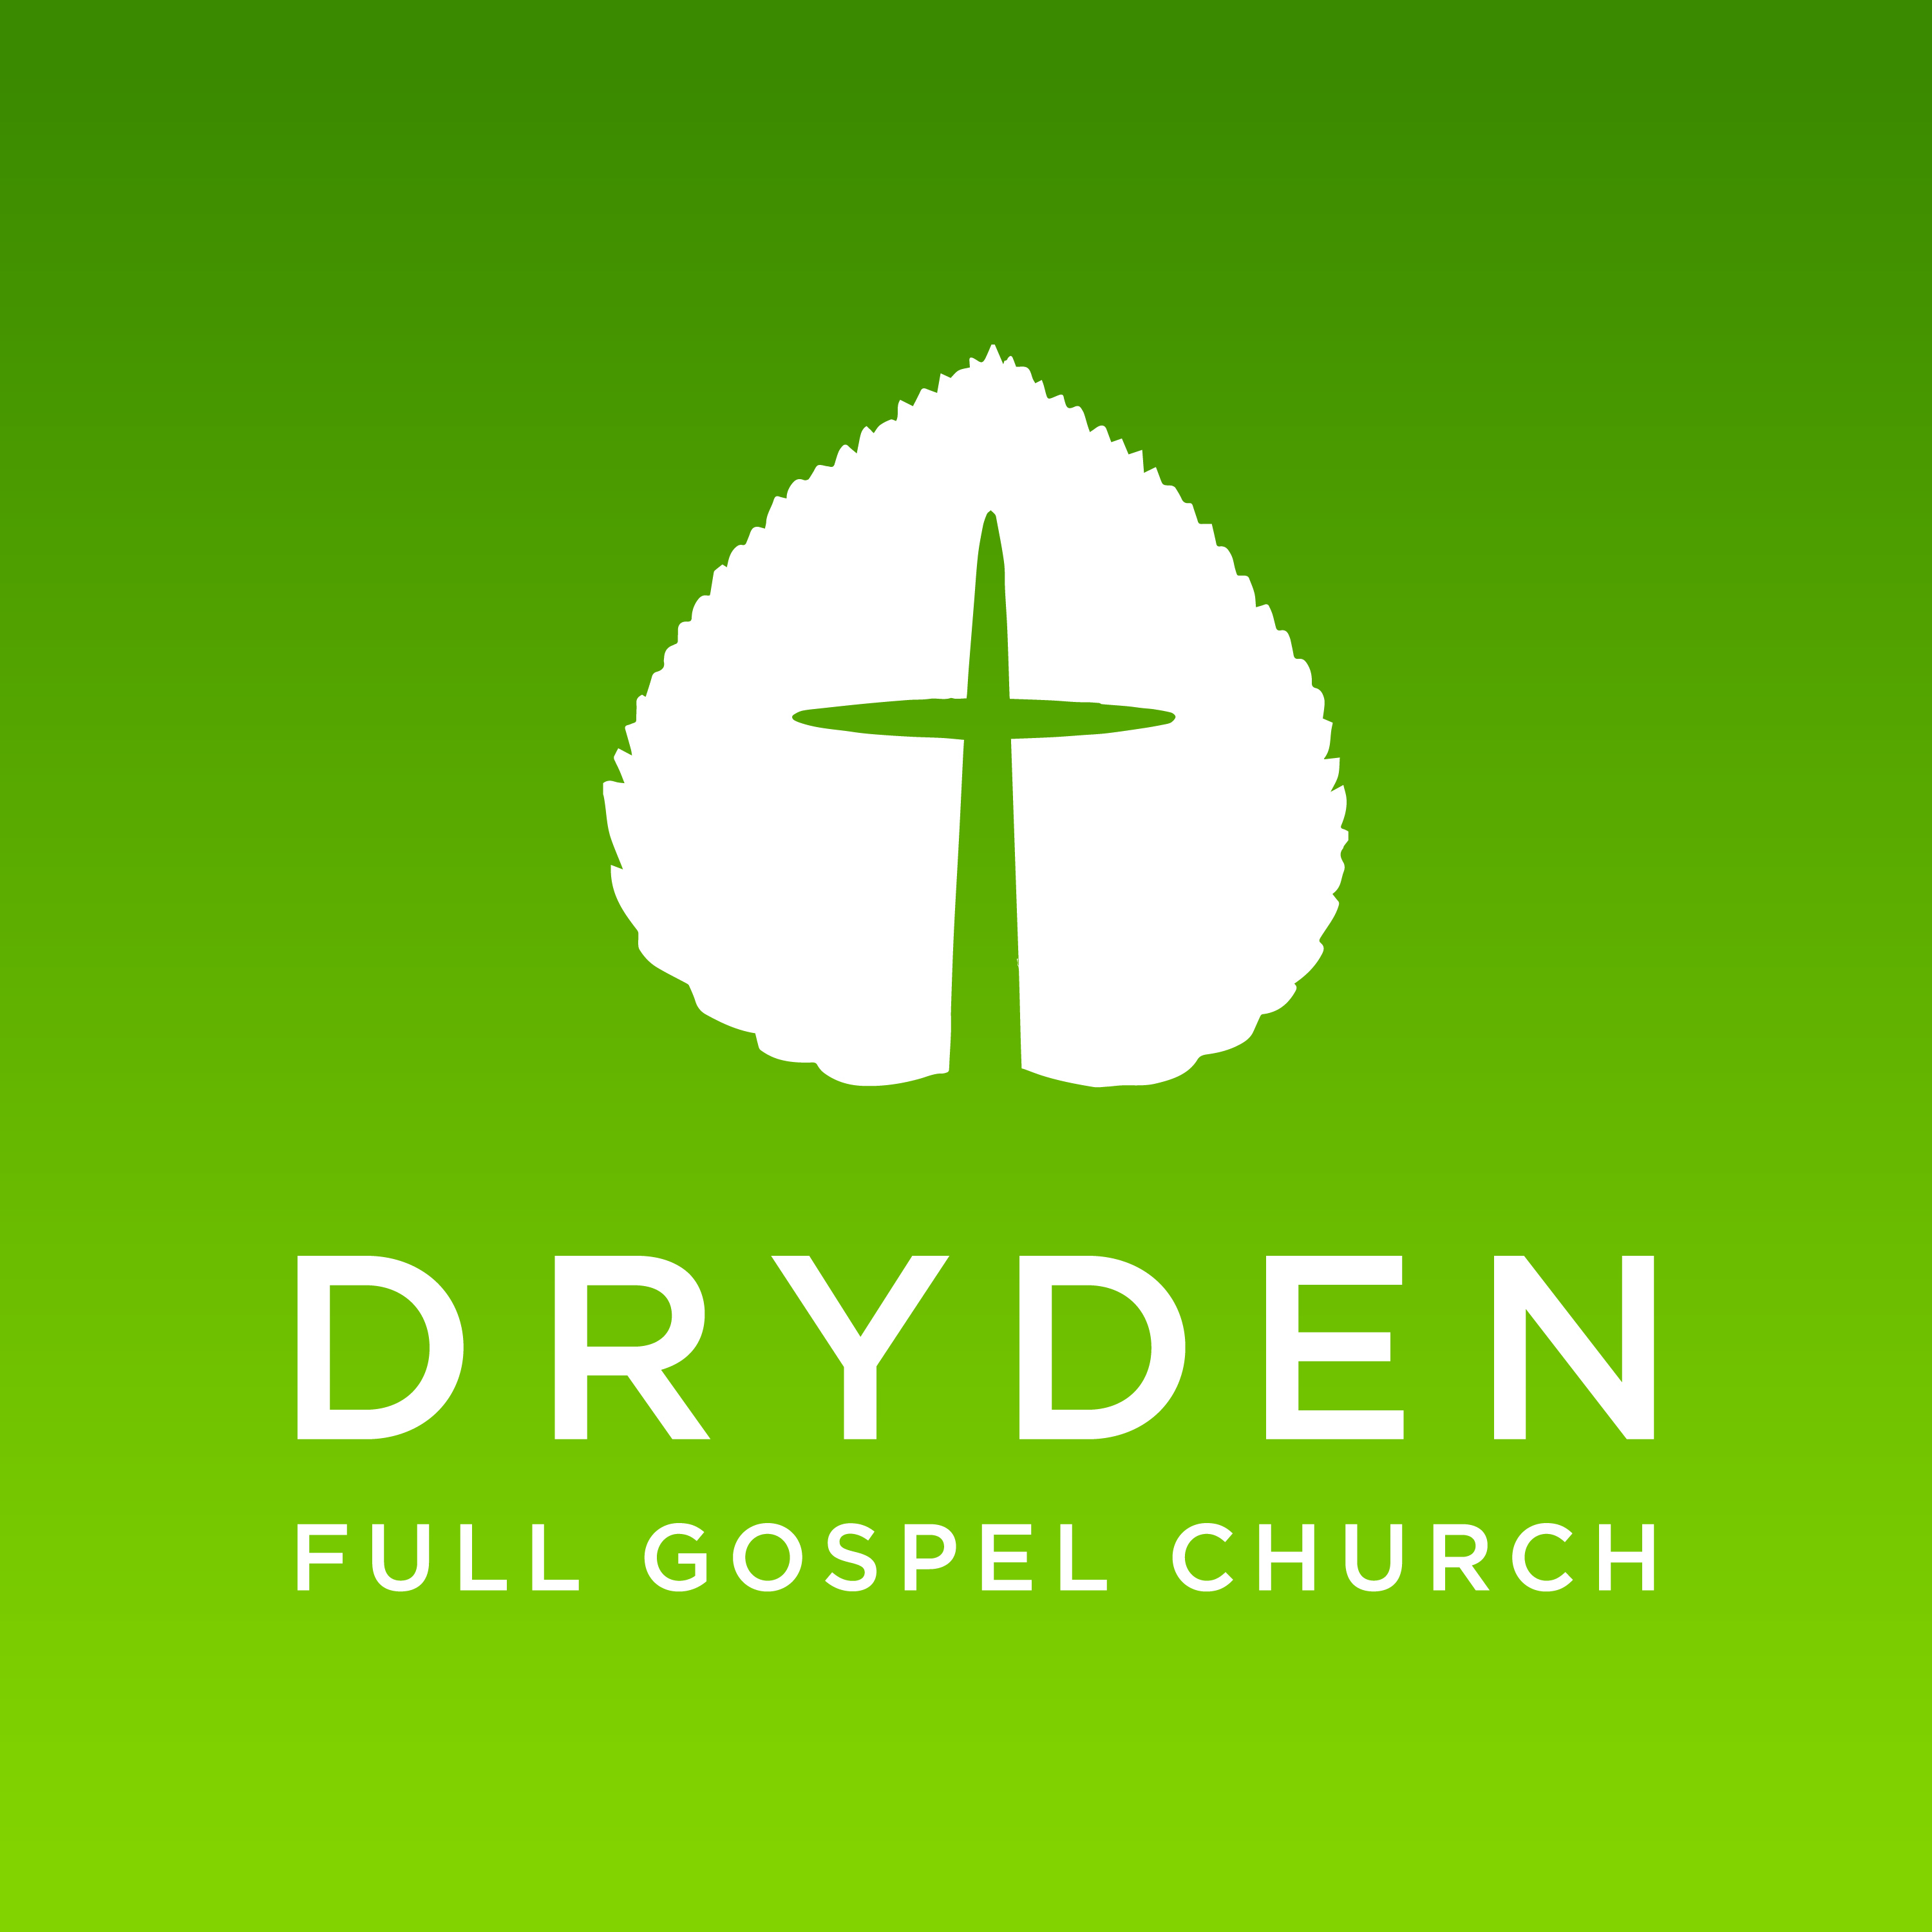 Dryden Full Gospel Church